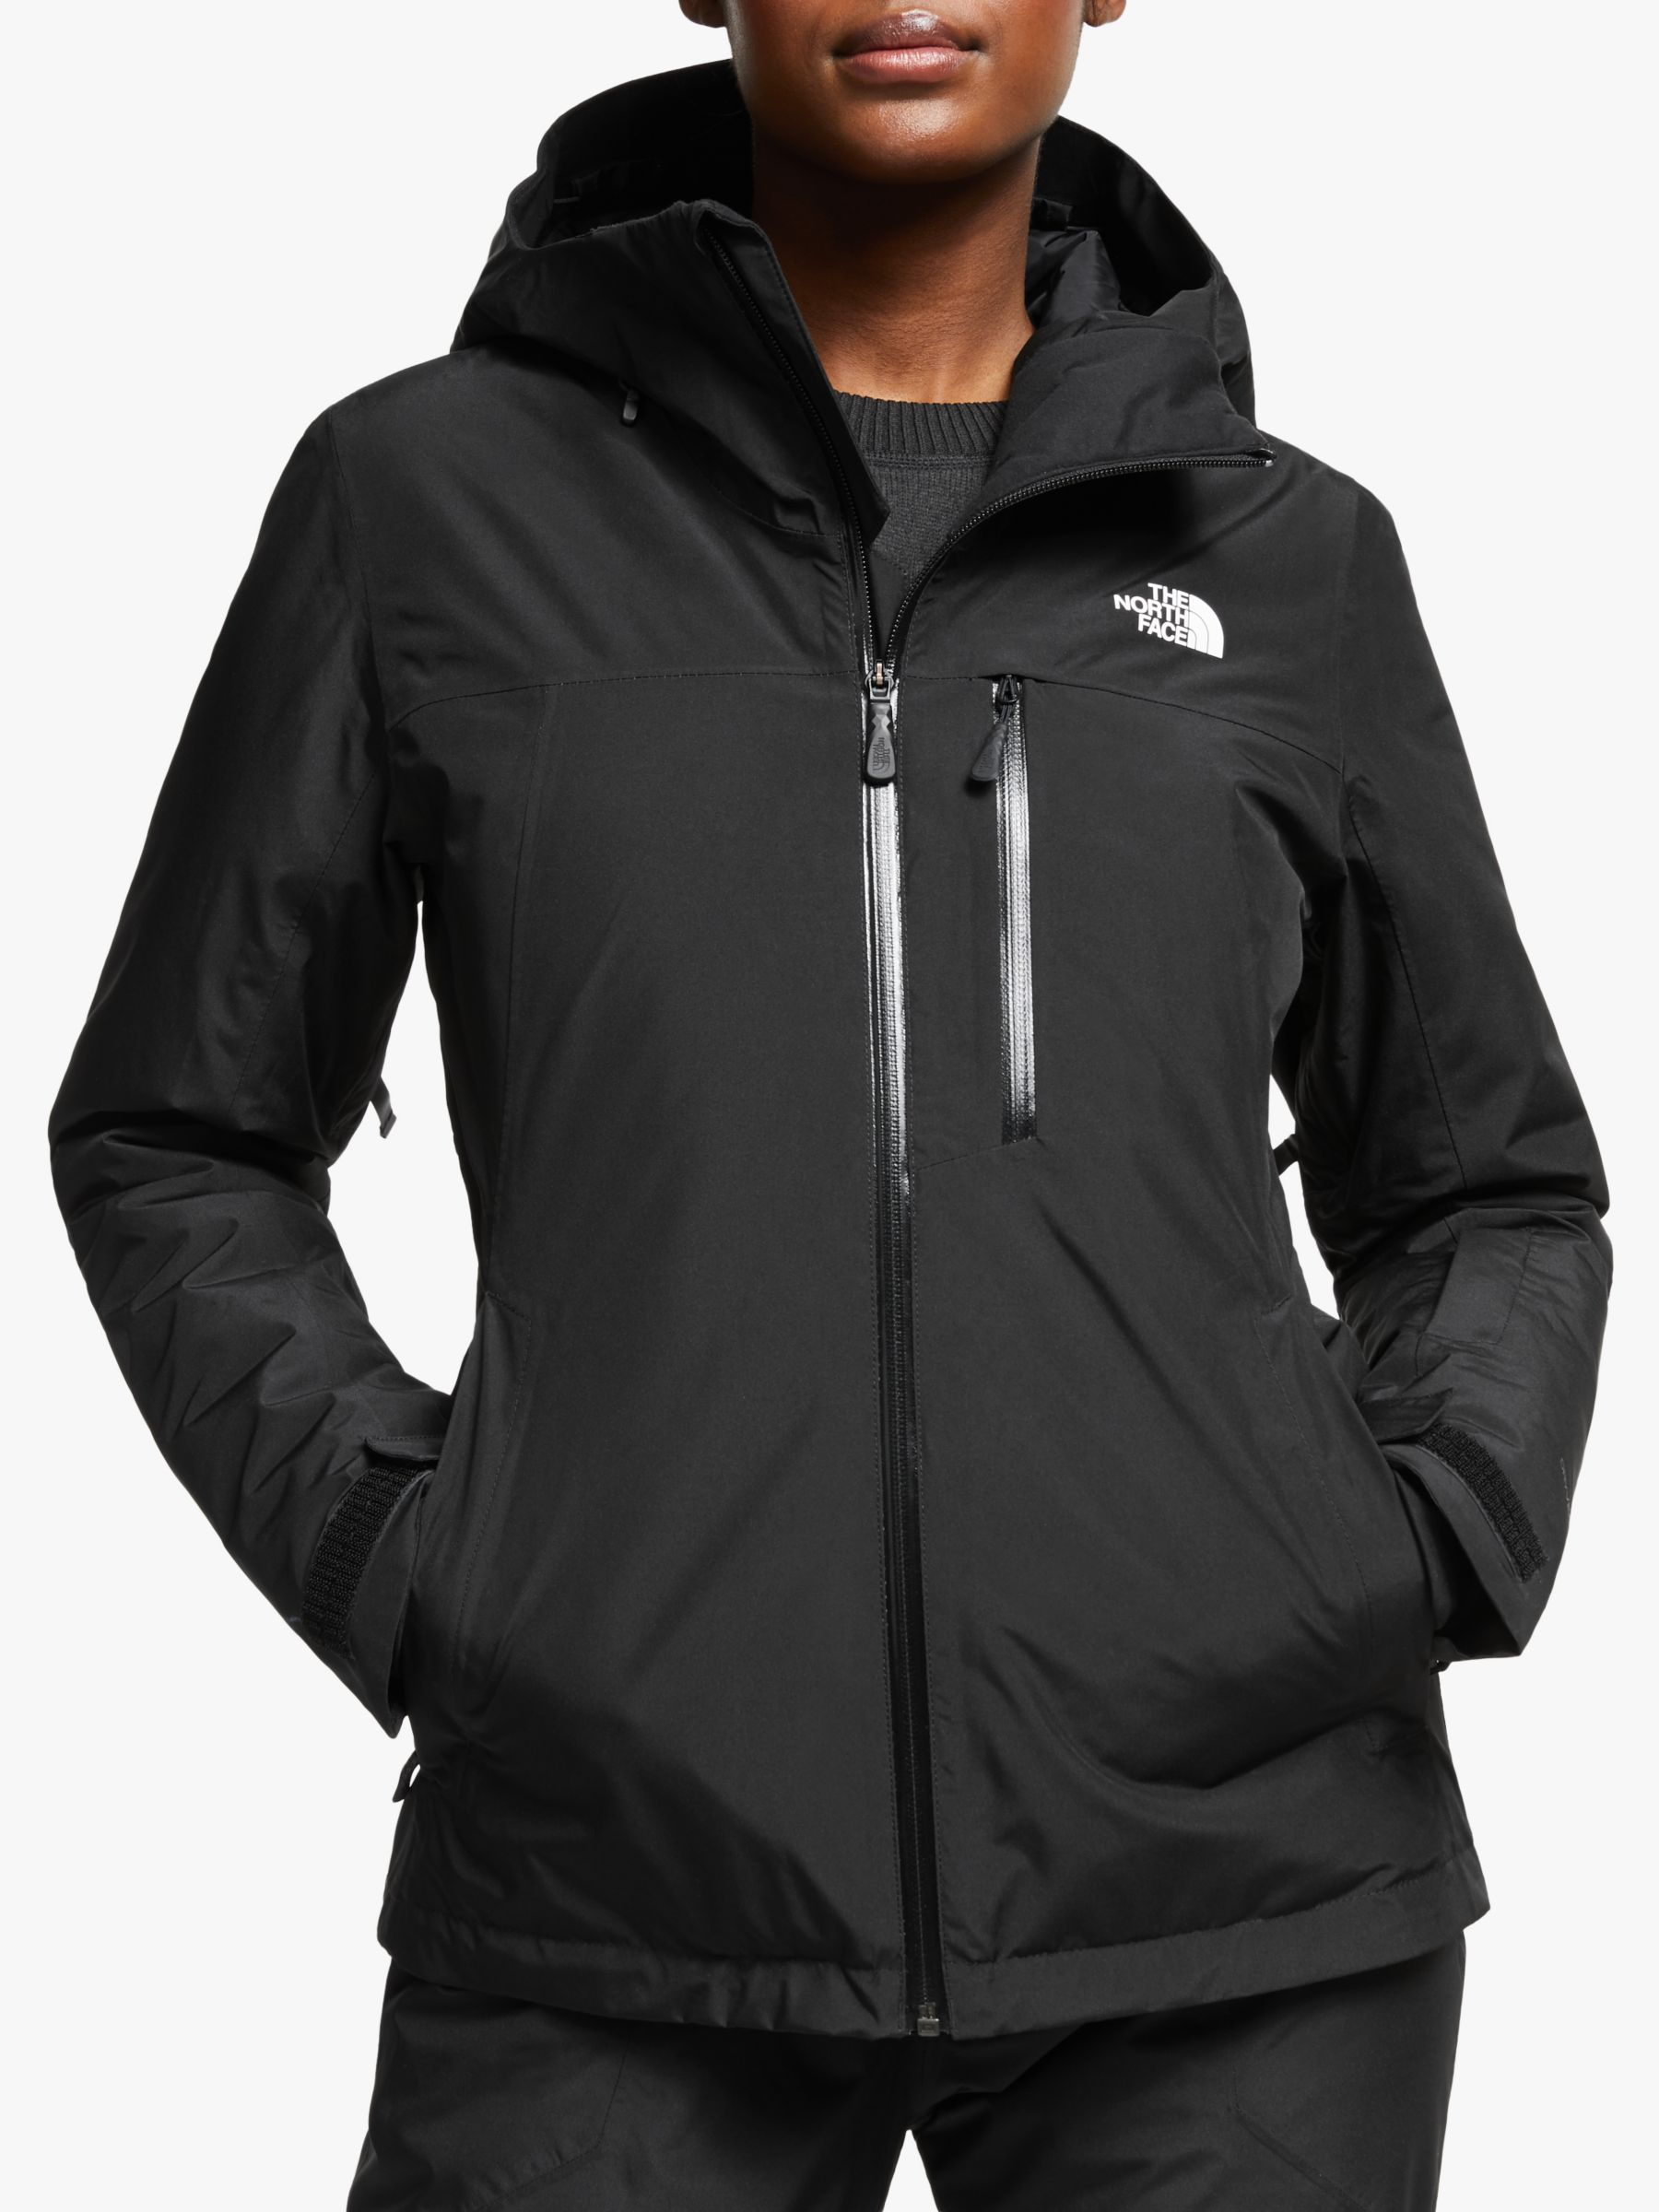 The North Face The North Face Descendit Women's Waterproof Ski Jacket, TNF Black